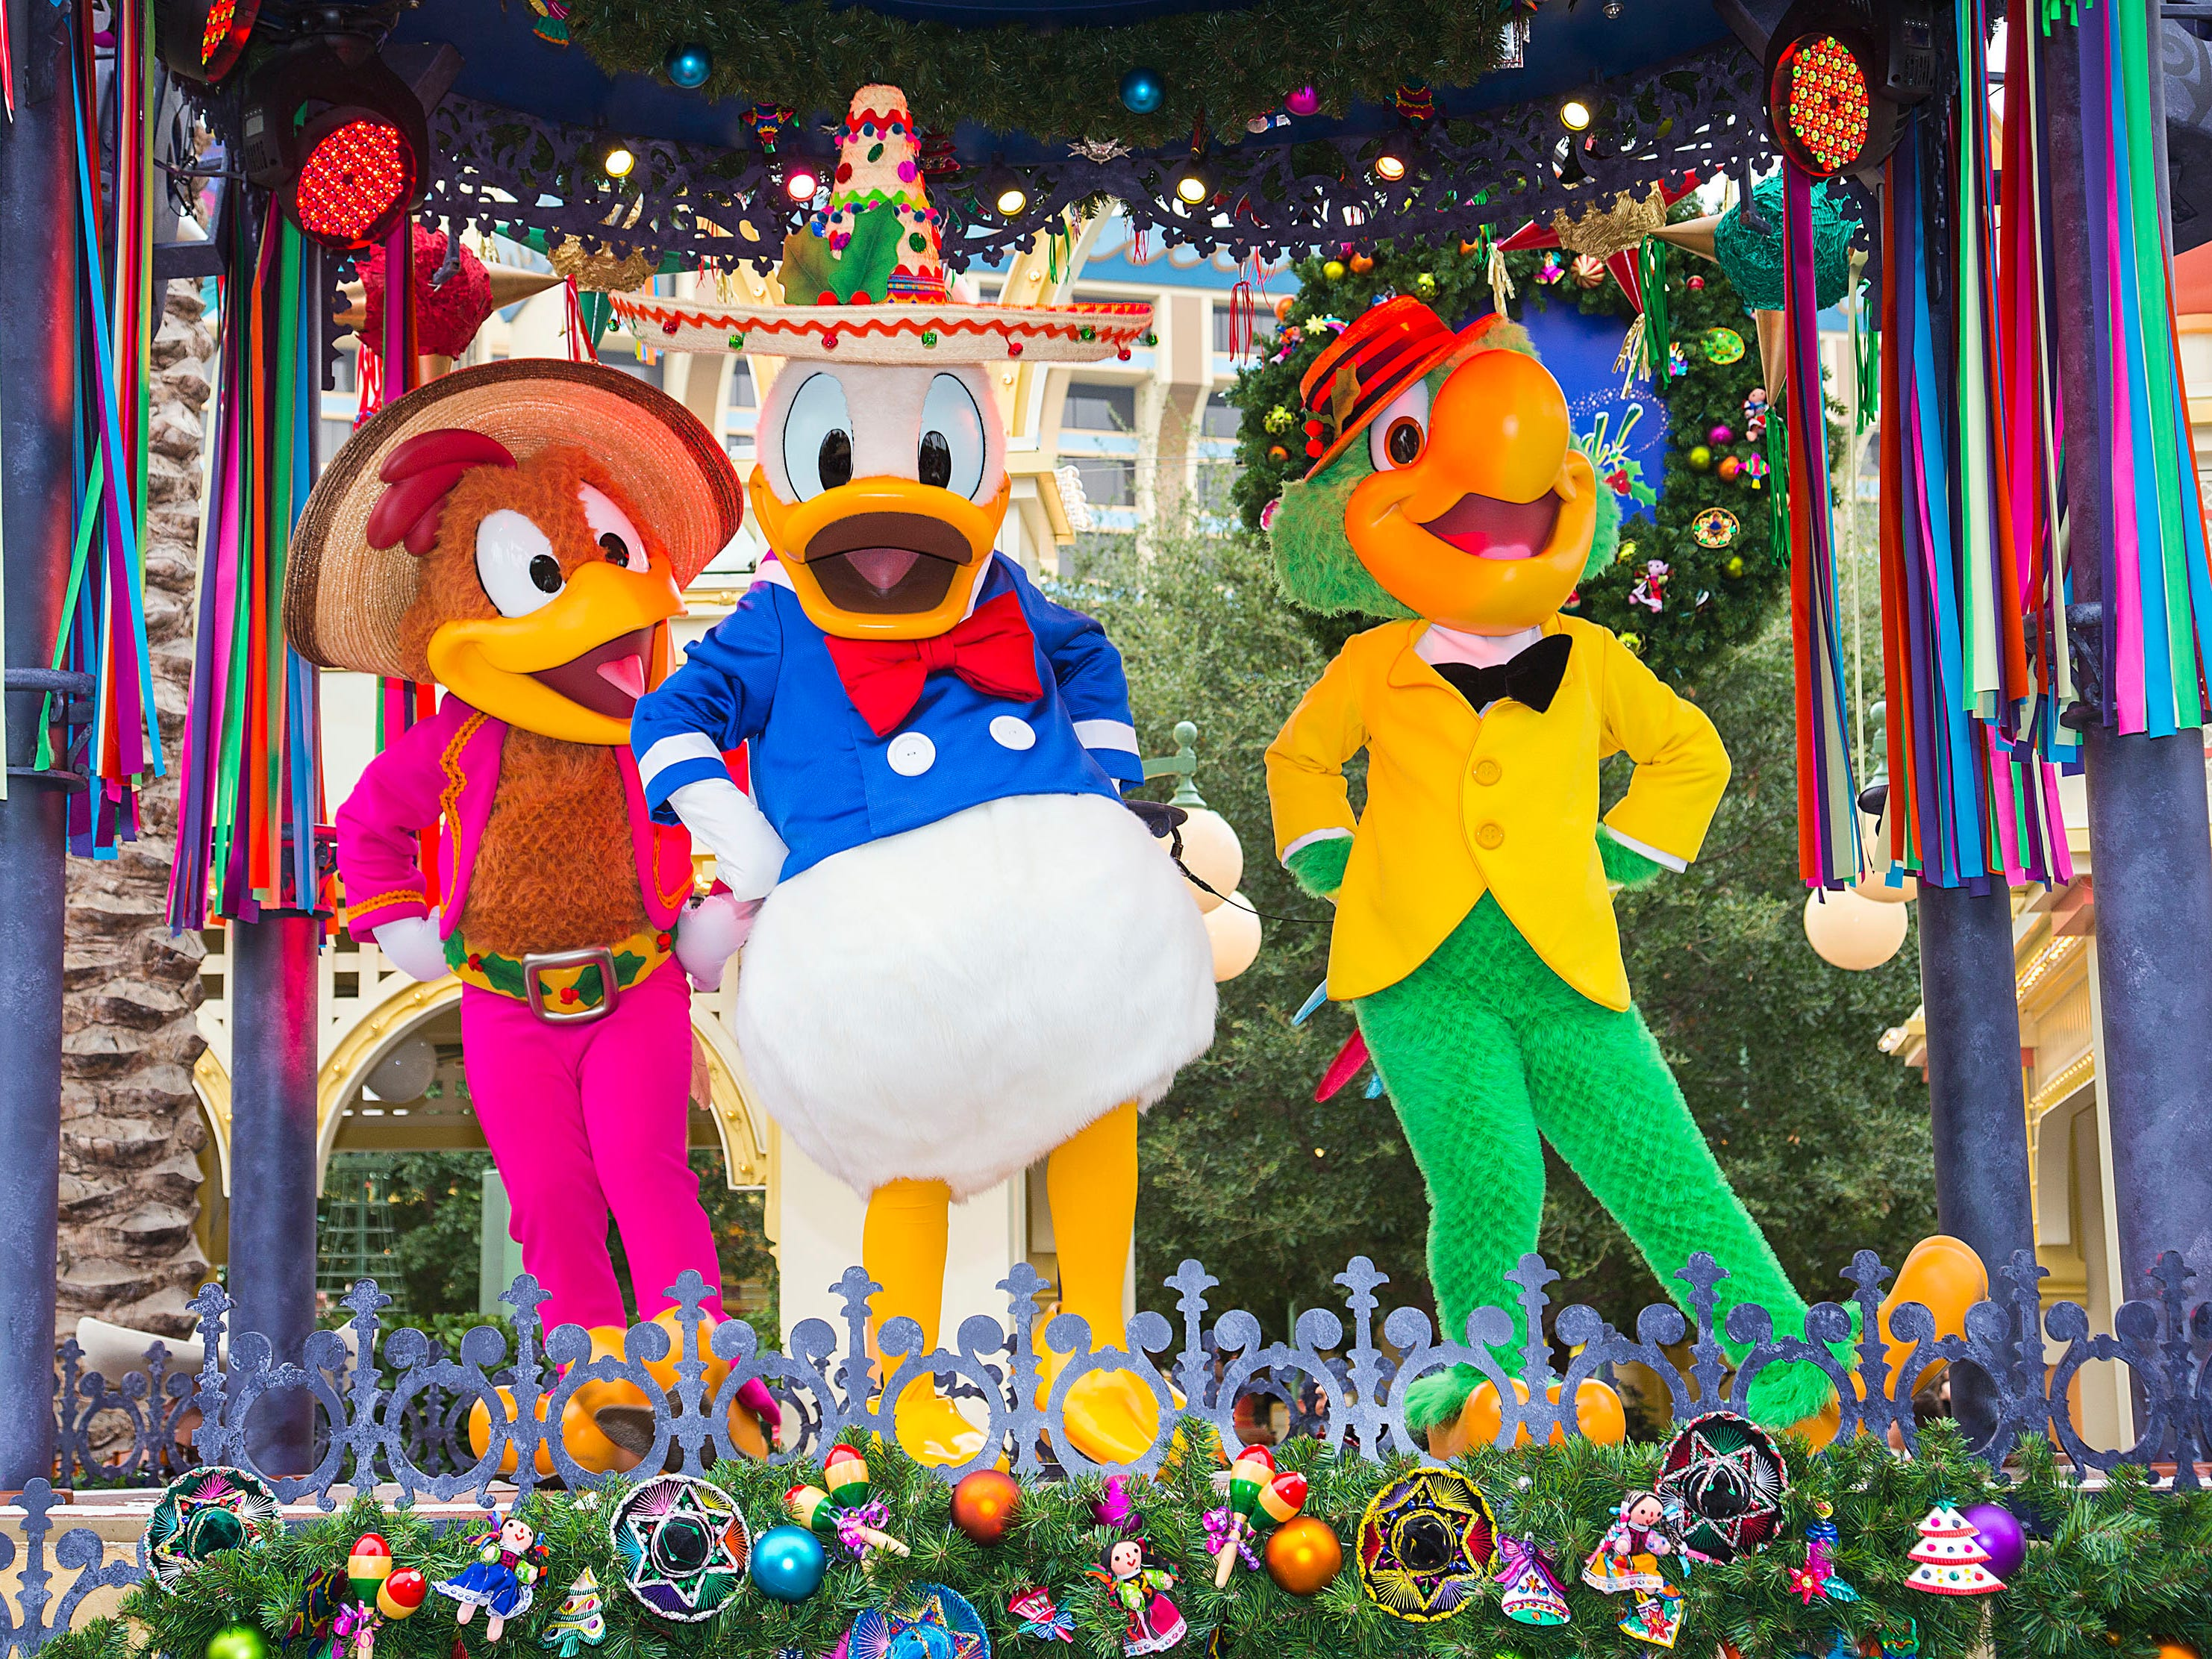 Disney ¡Viva Navidad! at Disney California Adventure Park is a jolly celebration of friendship and culture, featuring authentic mariachi and samba musicians, folklórico dancers, and Disney characters alike. Guests may enjoy the lively Disney ¡Viva Navidad! street party from Nov. 9, 2018, through Jan. 8 2019.